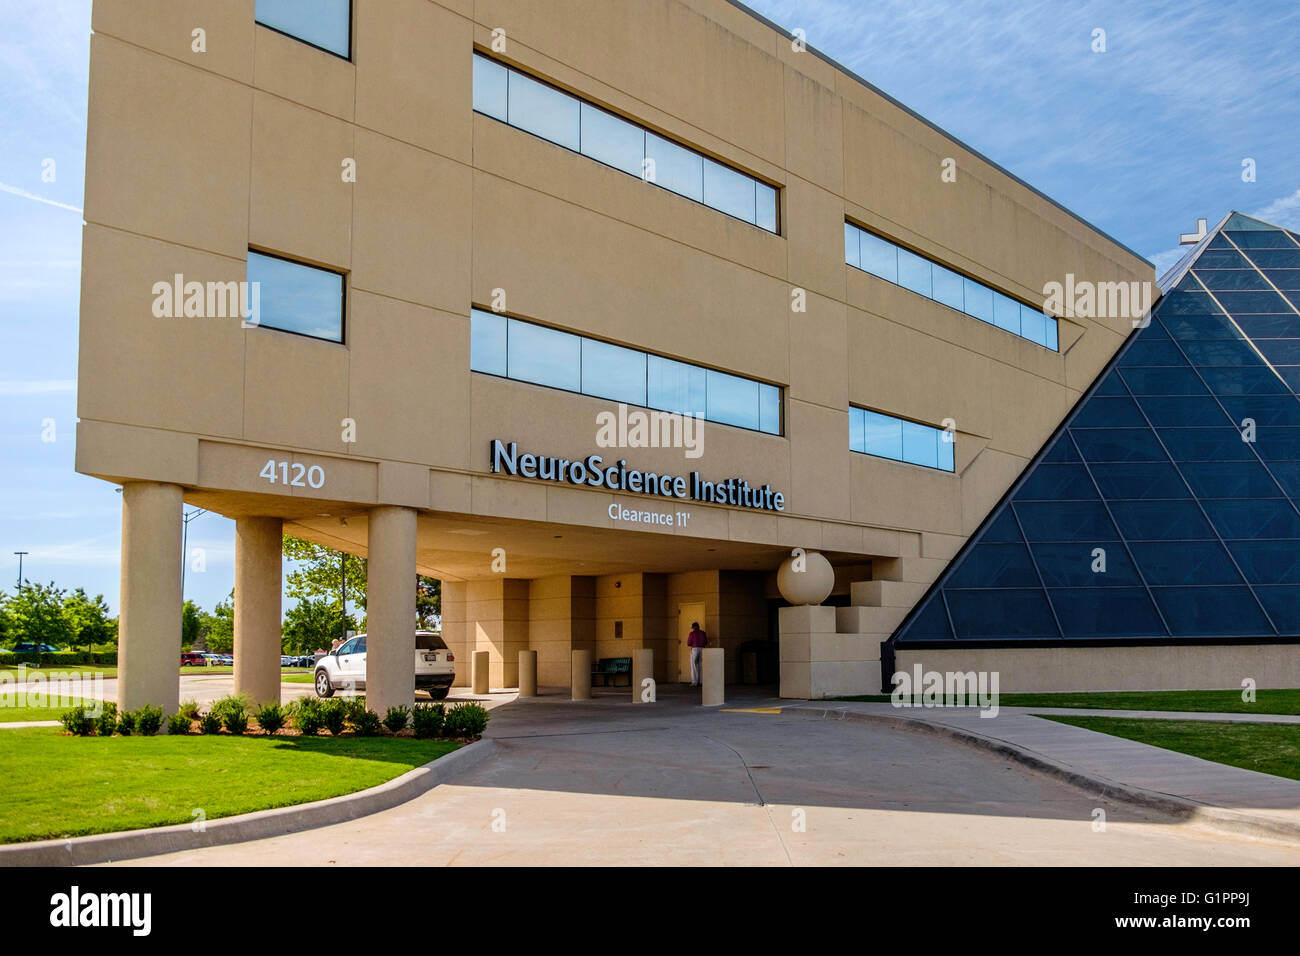 The exterior of a Neurology Institute specializing in neurological problems. Oklahoma City, Oklahoma, USA. - Stock Image